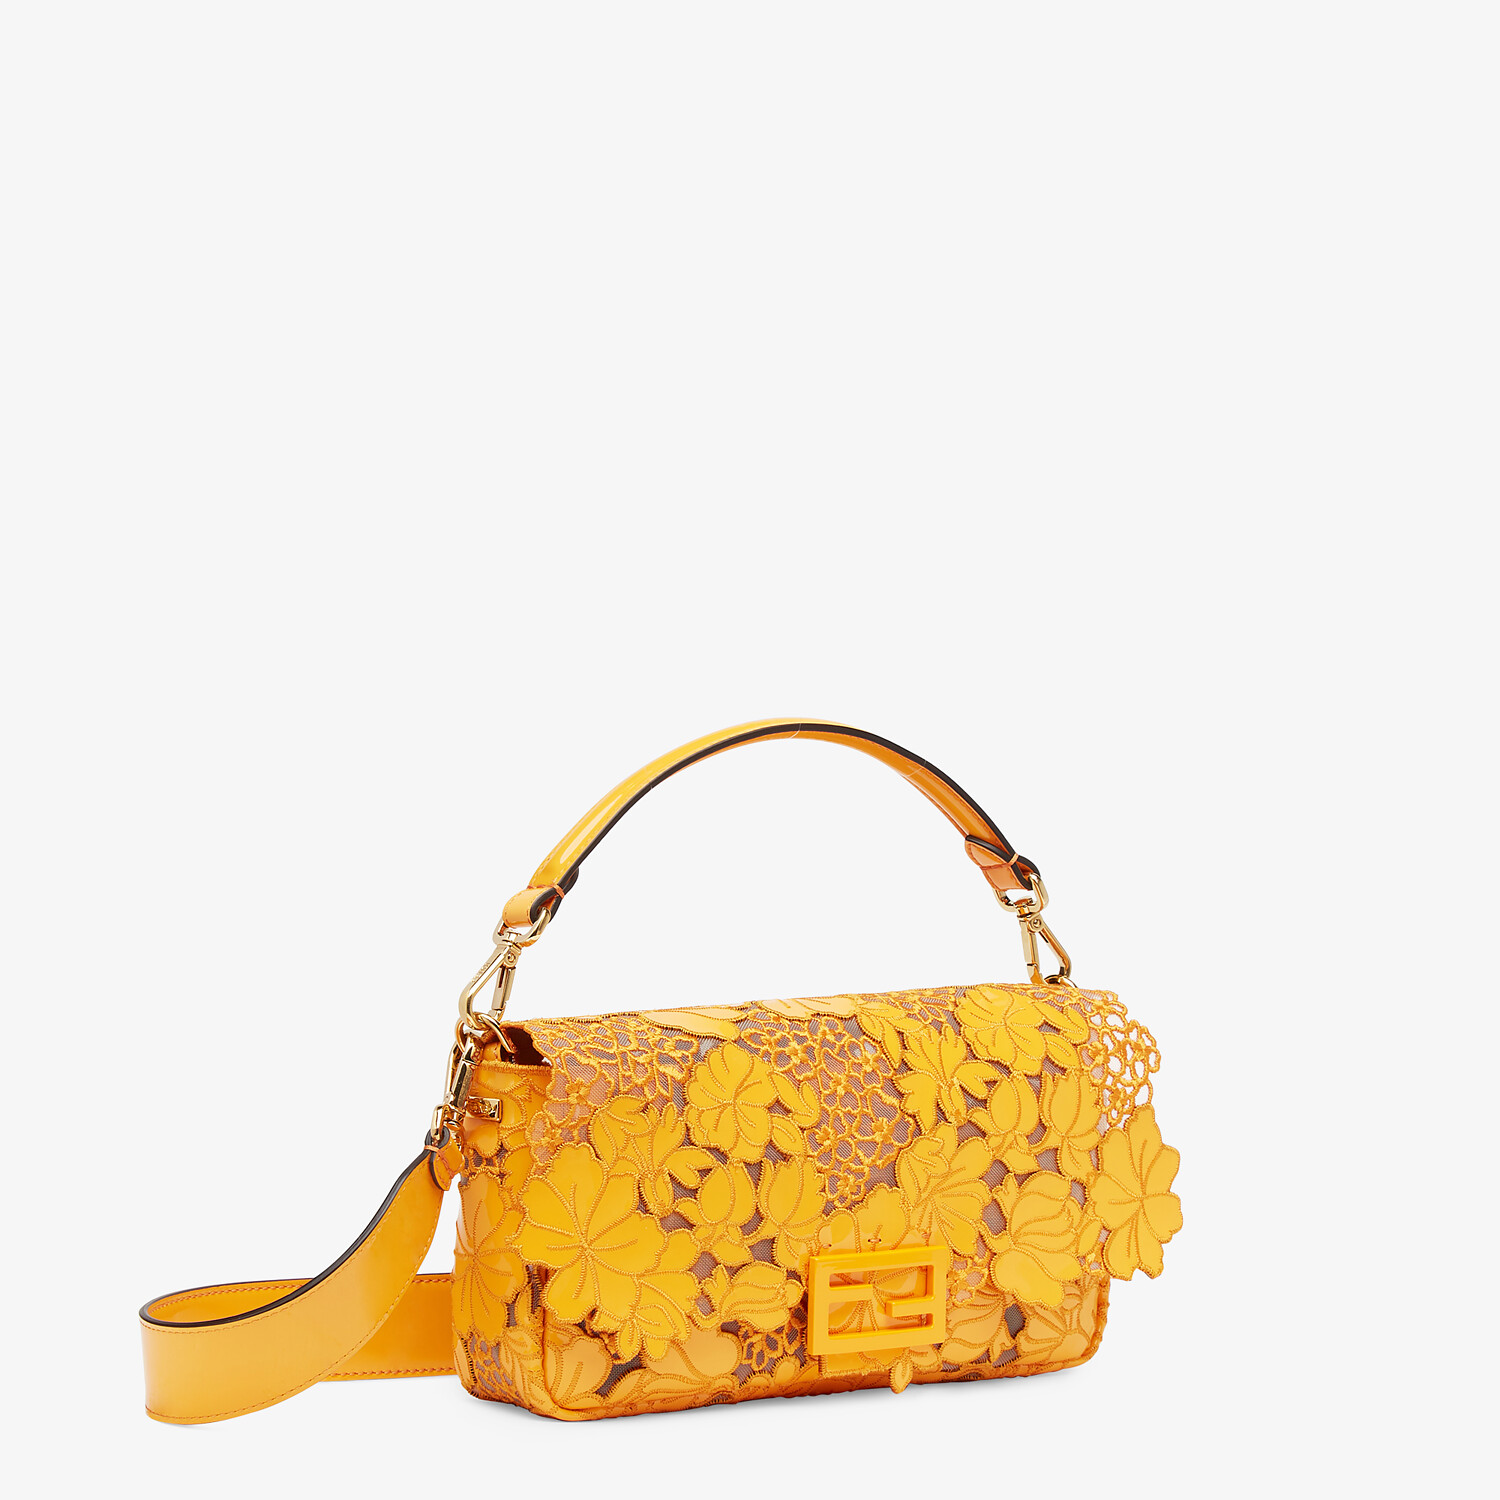 FENDI BAGUETTE - Embroidered orange patent leather bag - view 3 detail